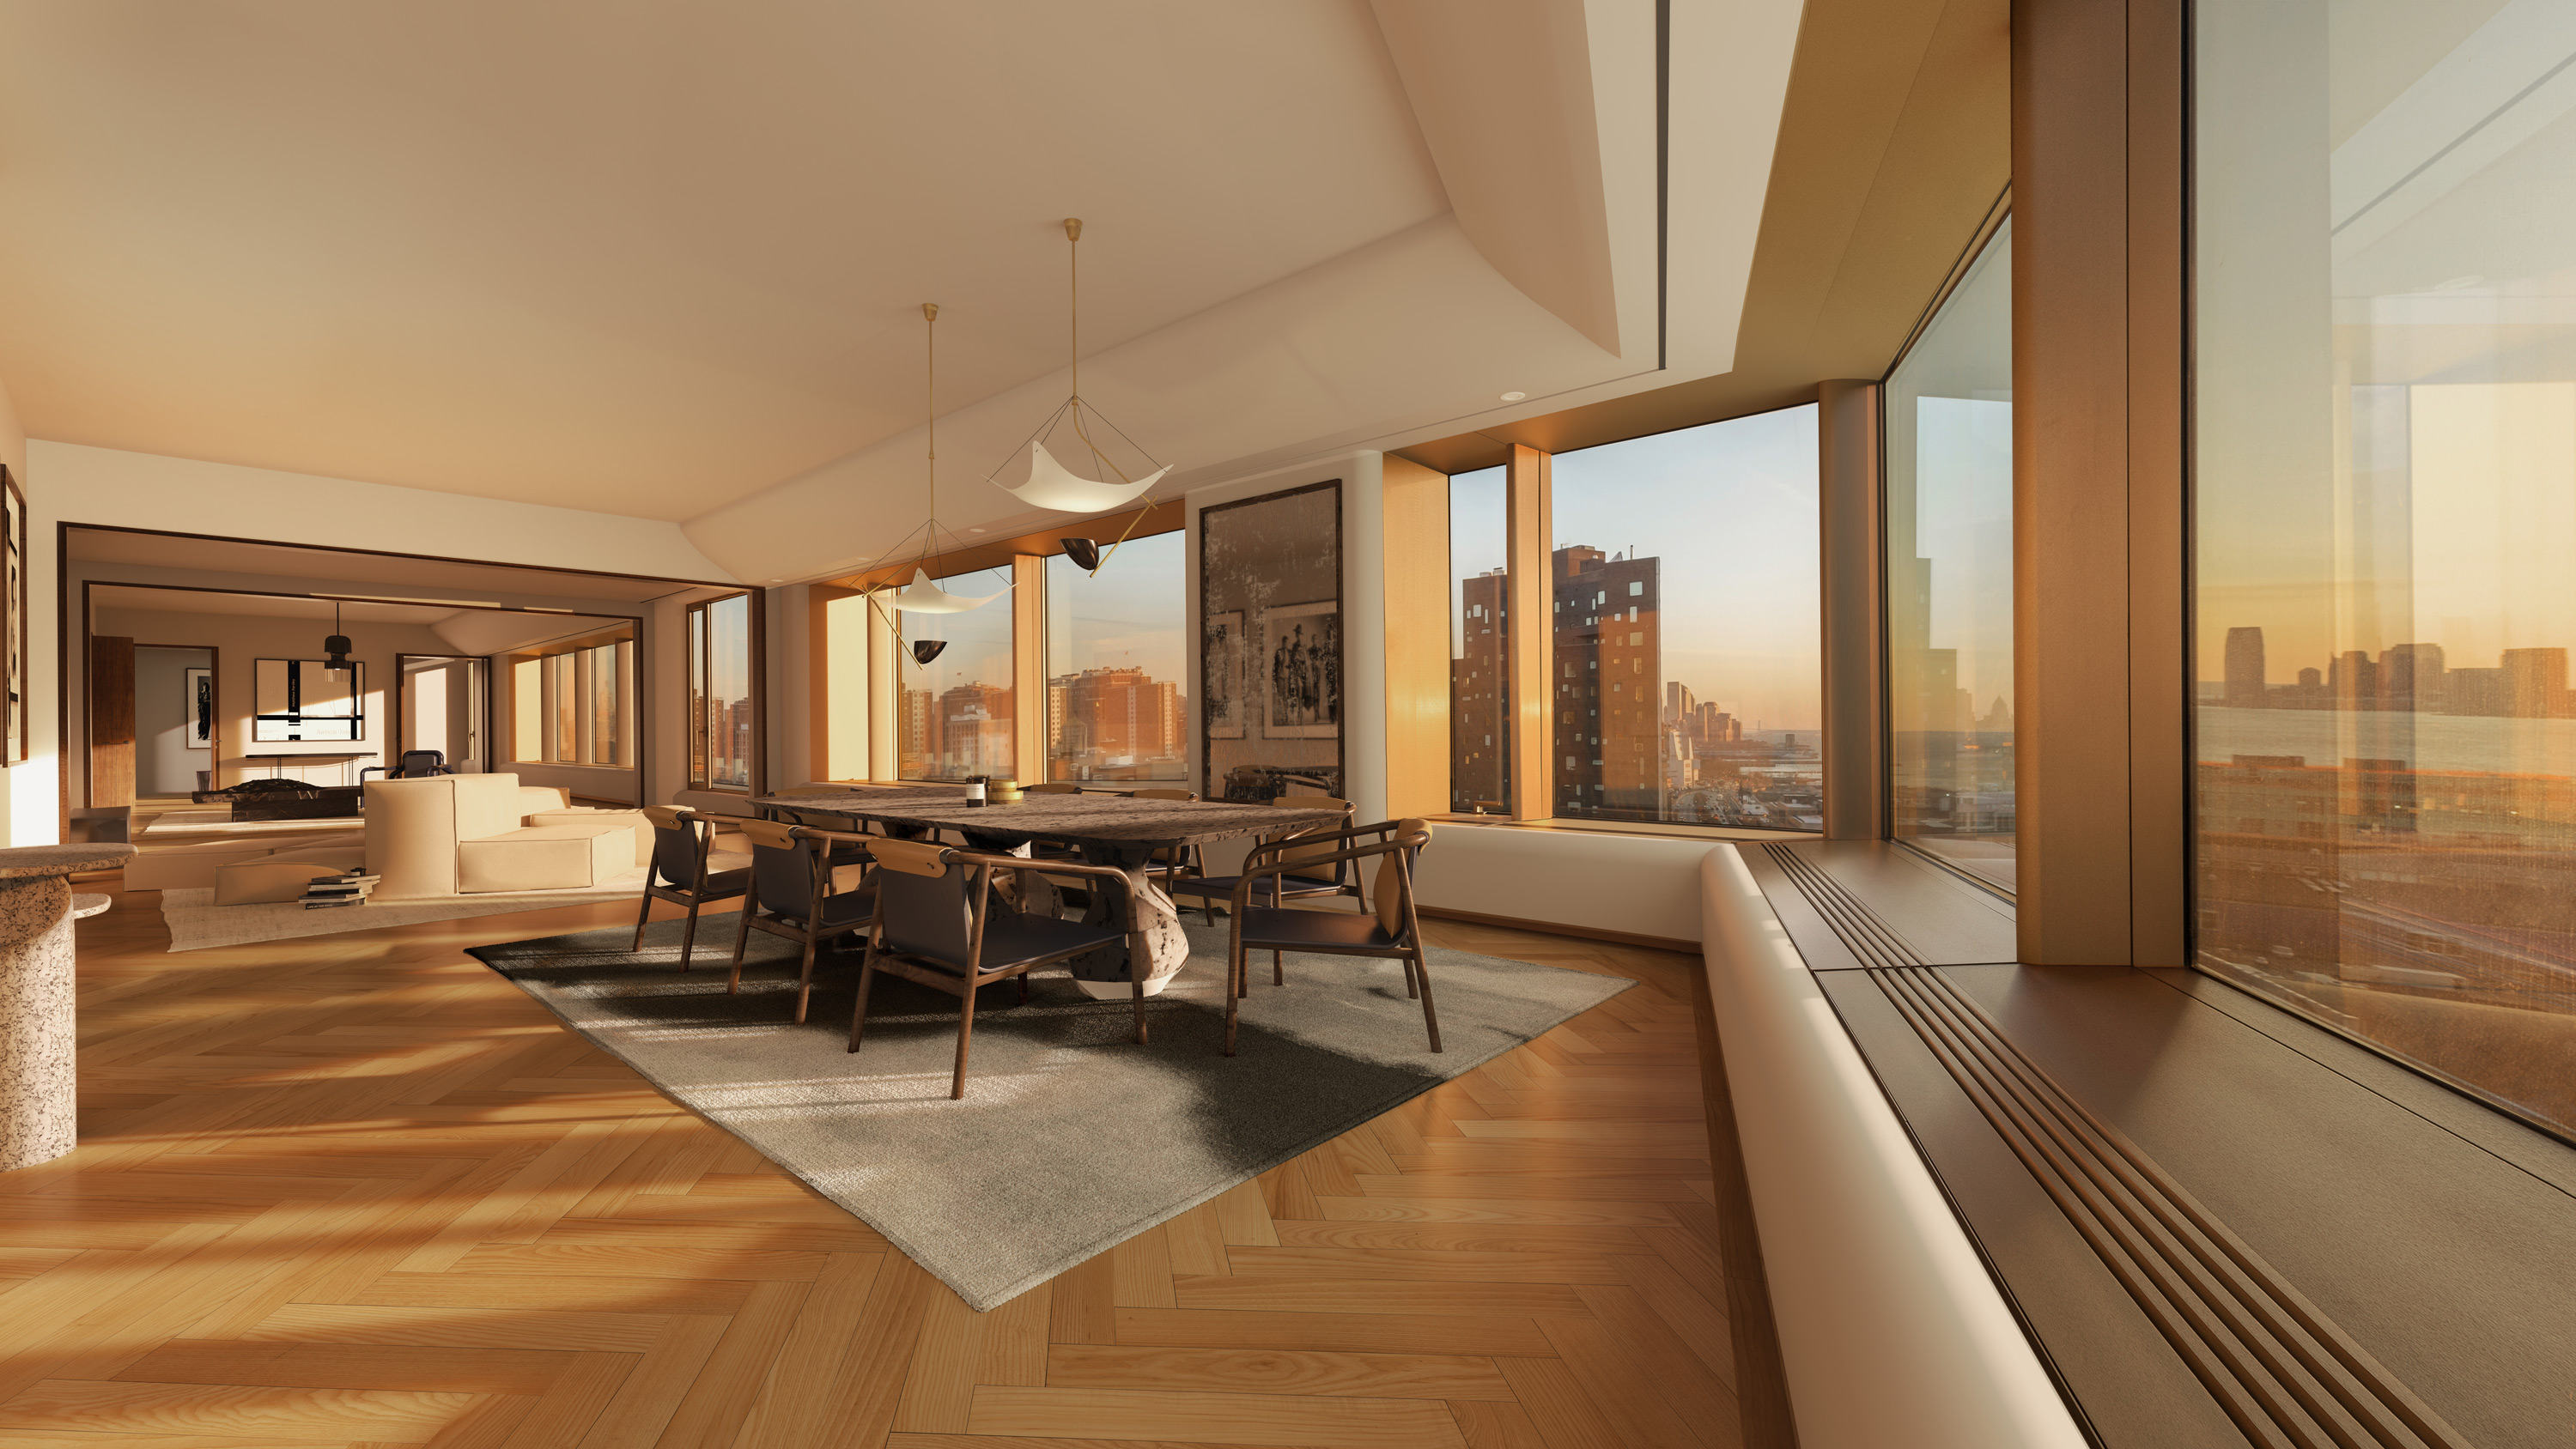 Views of the Hudson River and the dazzling New York City skyline can be seen from this extraordinary full-floor residence designed by Foster + Partners.